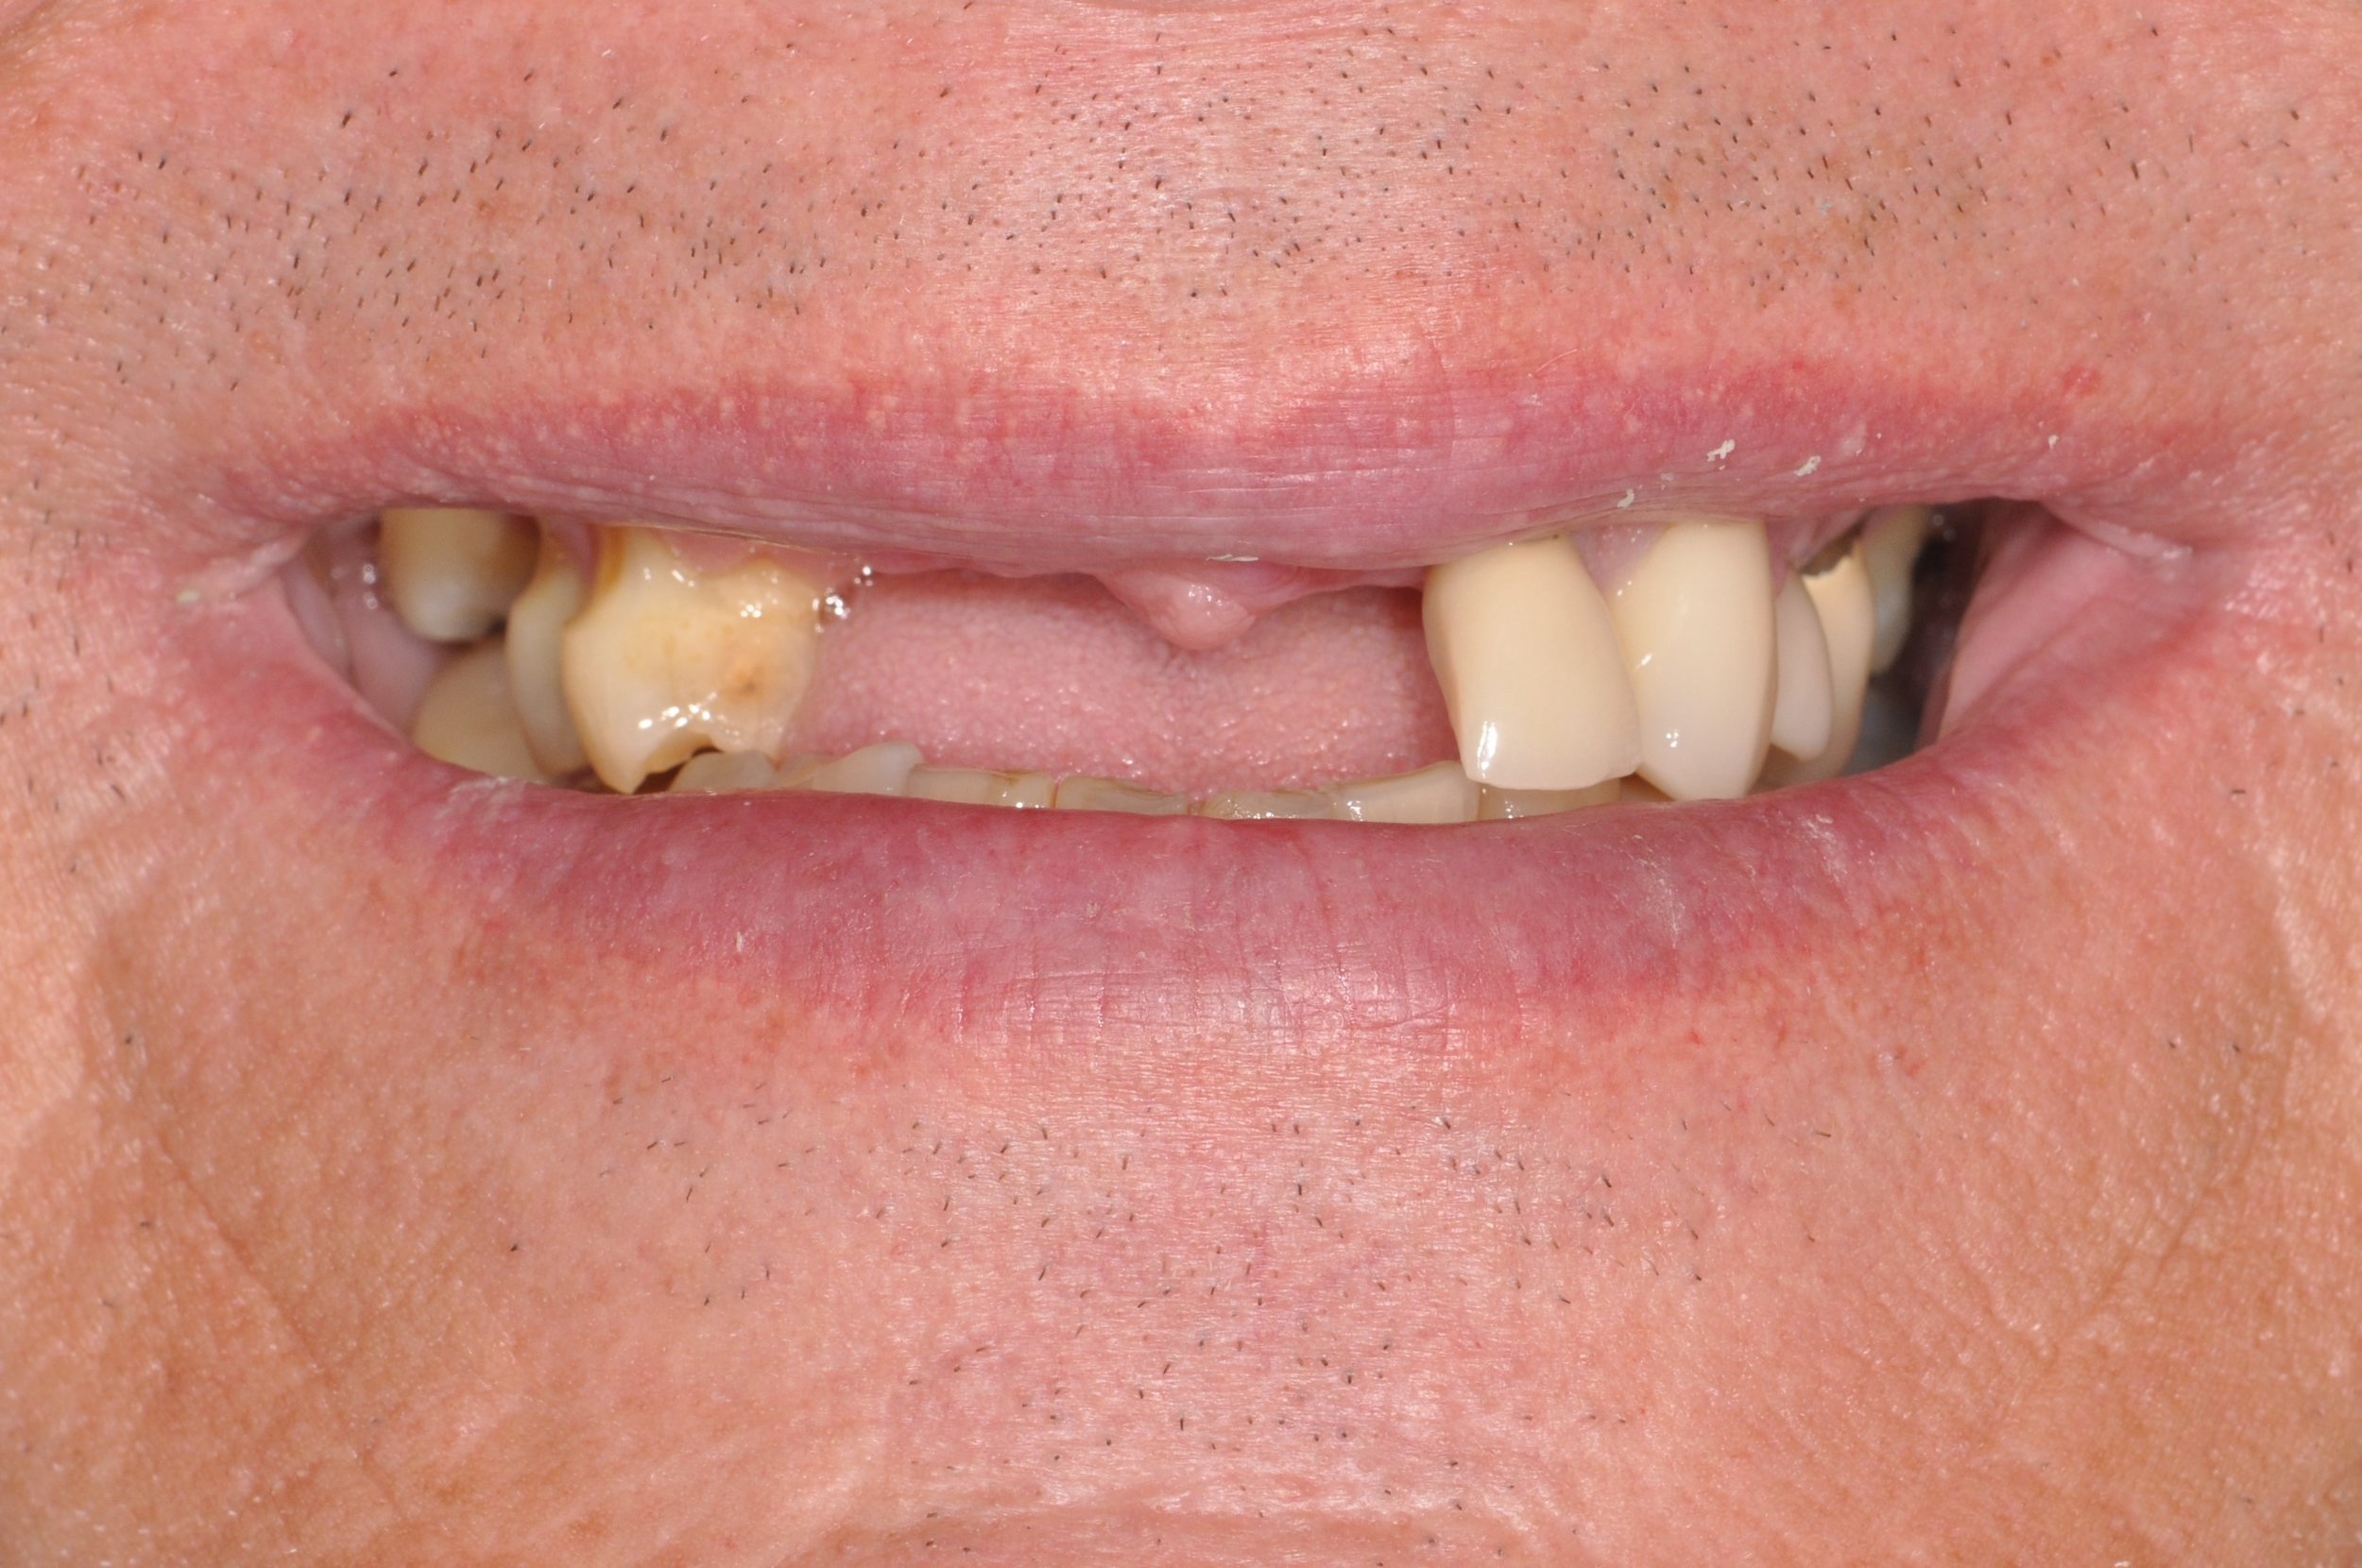 Patient's appearance with removable partial out, before dental implant placement.